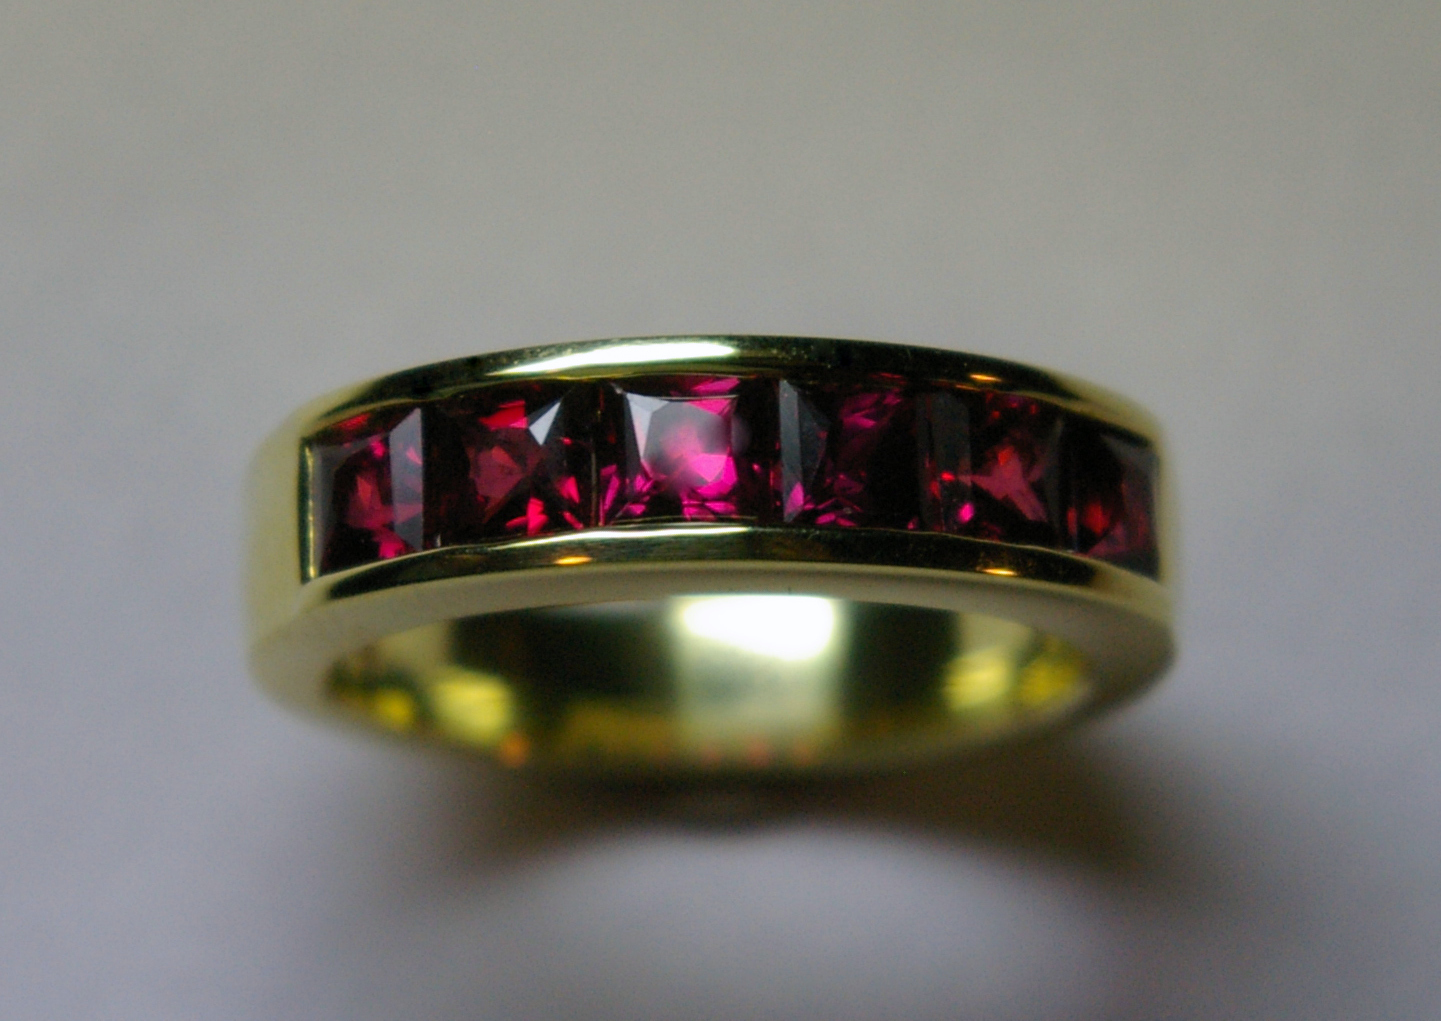 18 Karat Yellow Gold with Square cut Rubies